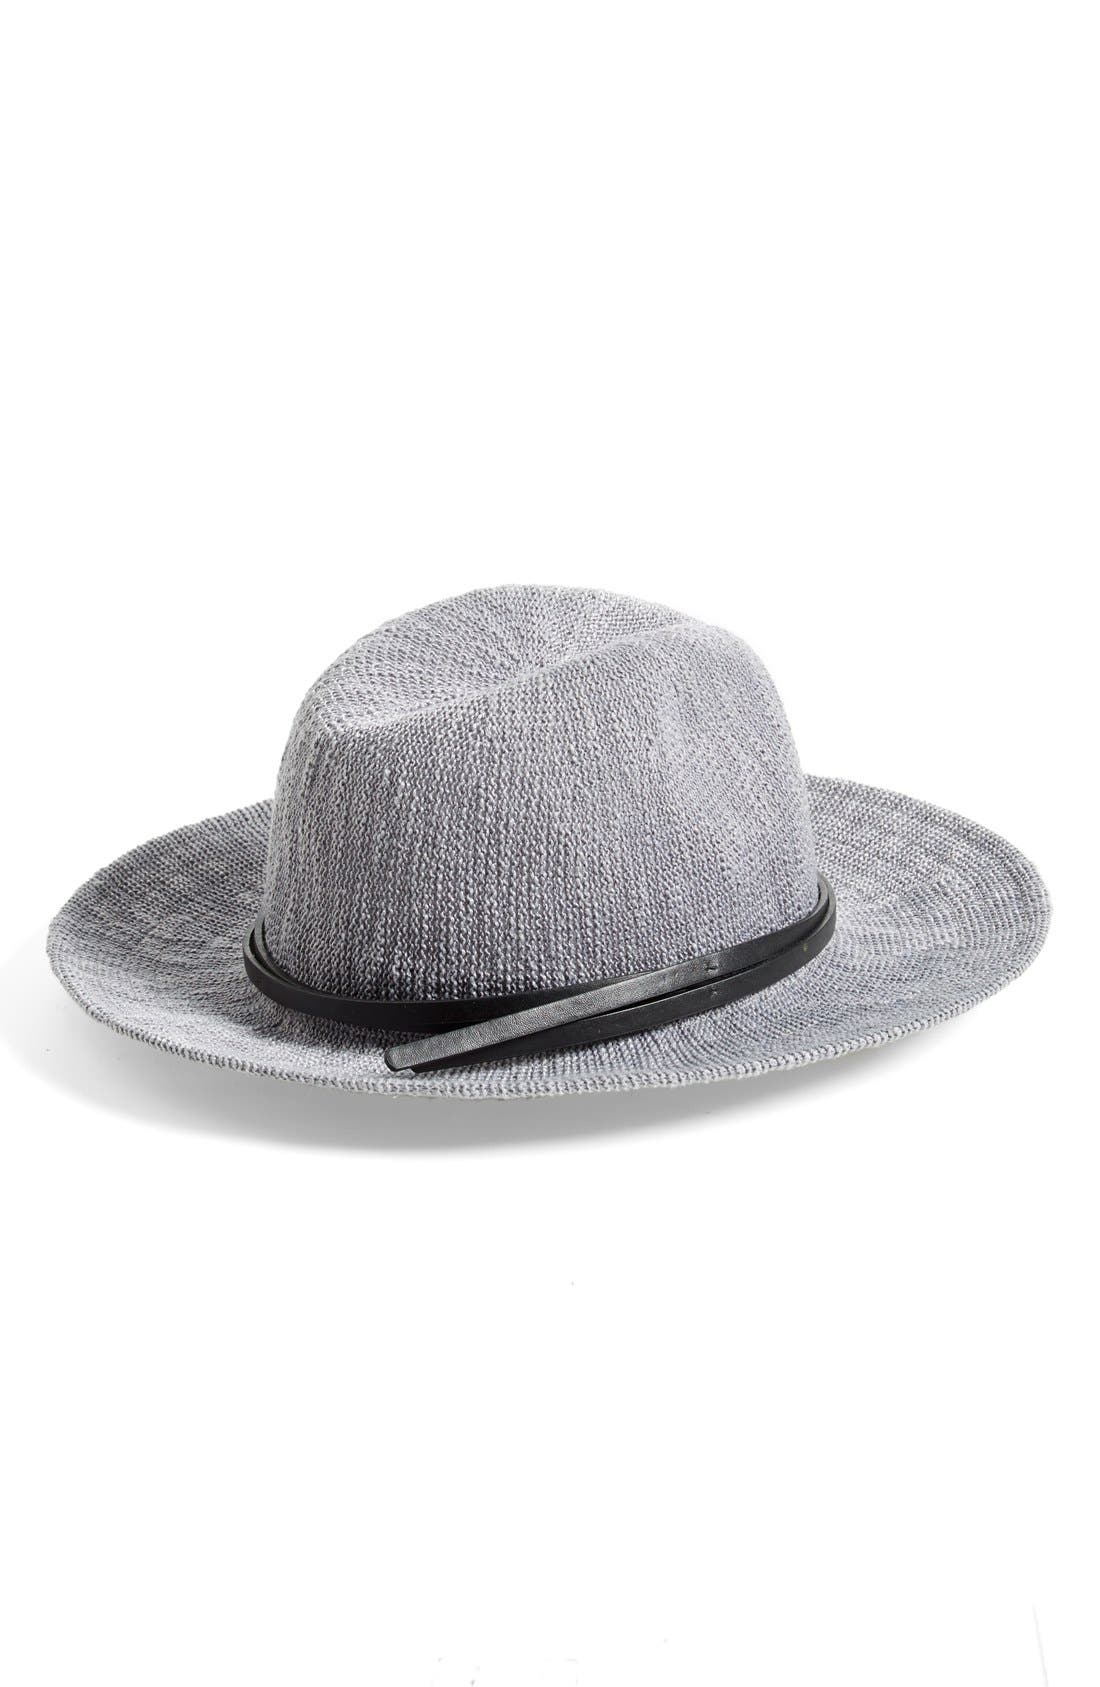 Alternate Image 1 Selected - Phase 3 Knit Wide Brim Hat